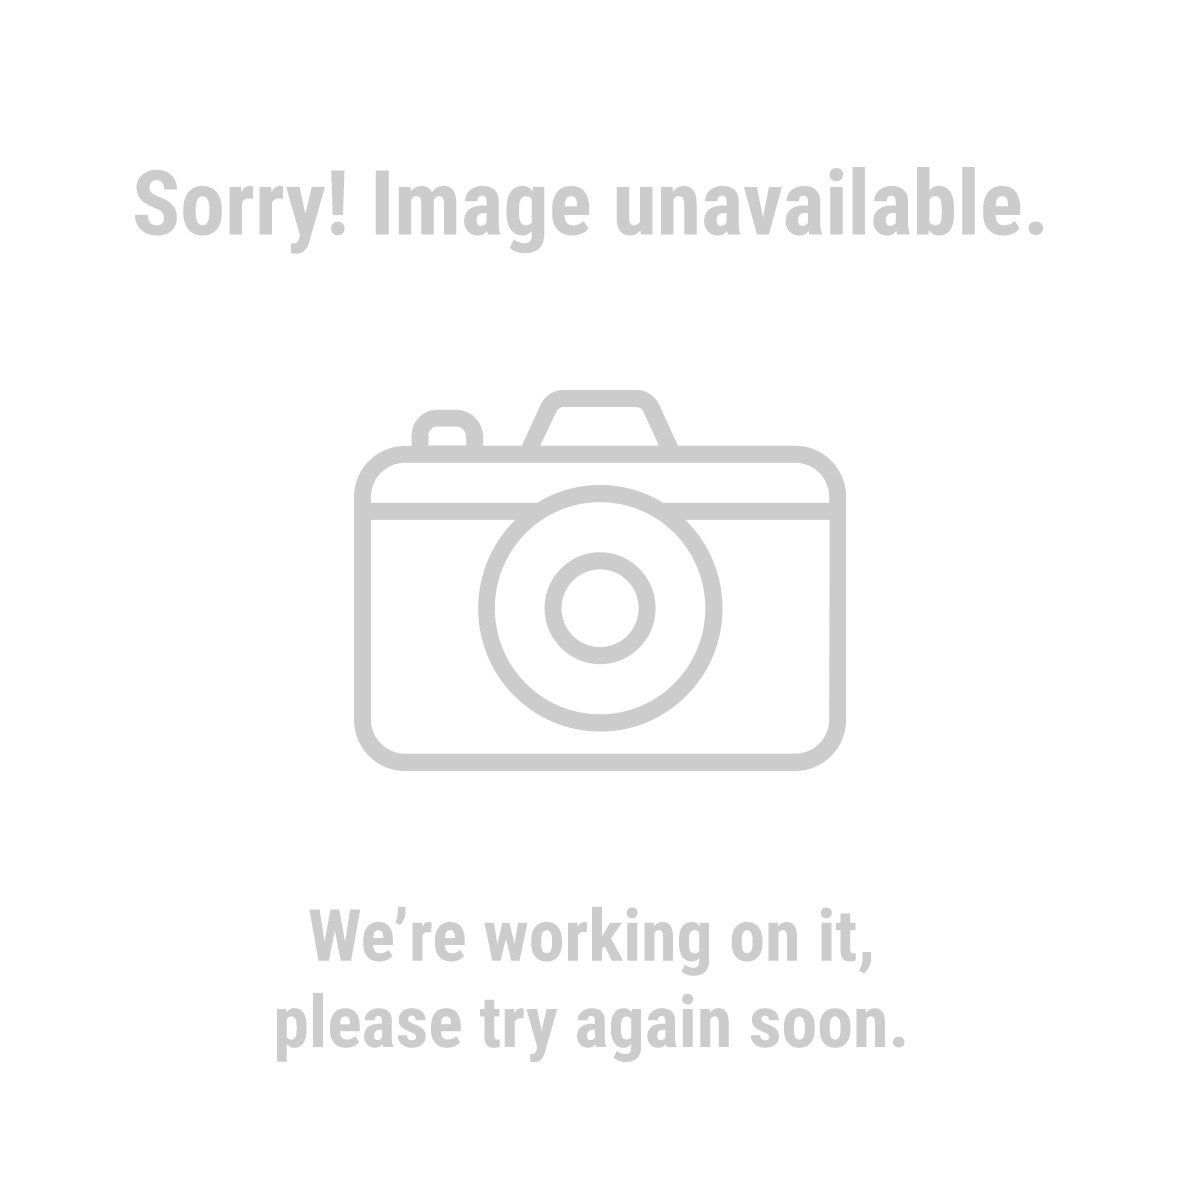 Western Safety 95569 Police-Style Kevlar Gloves, X-Large